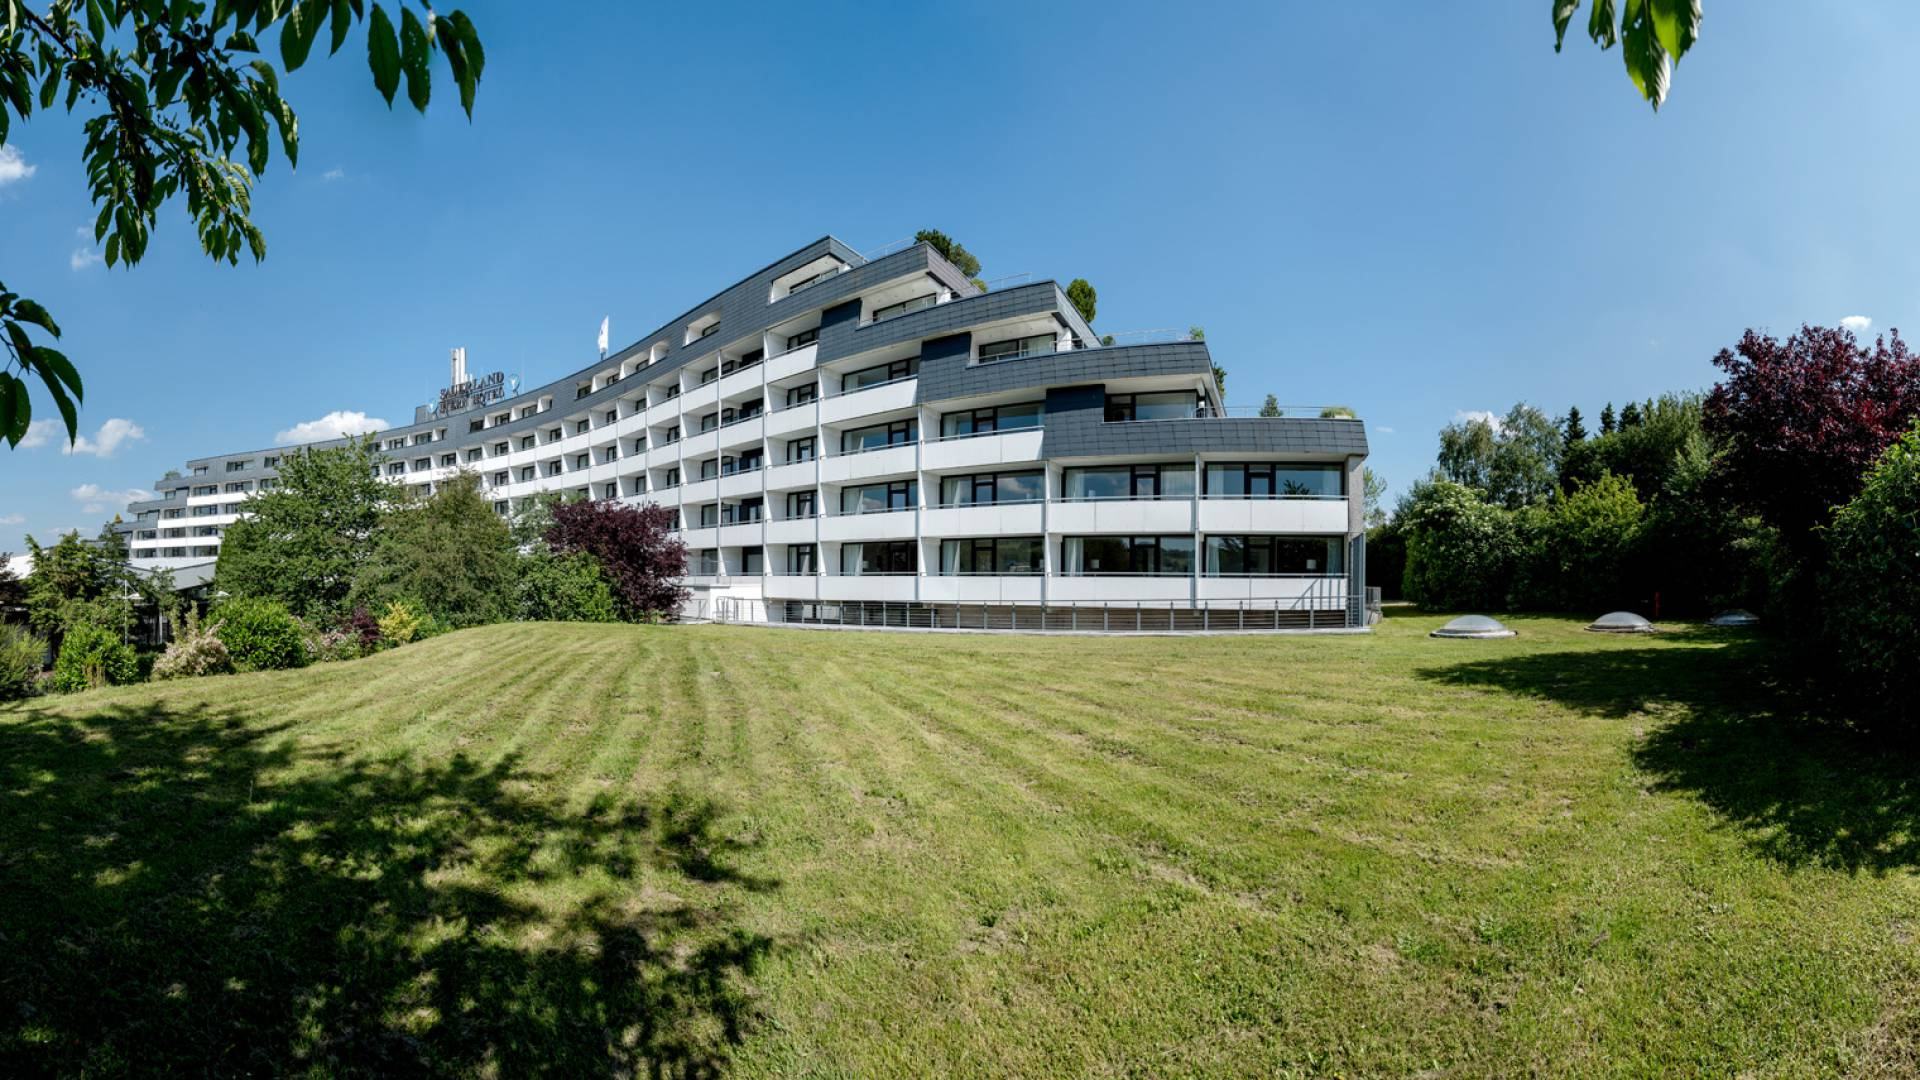 Sauerland Stern Hotel: The largest Hotel in the middle of Germany